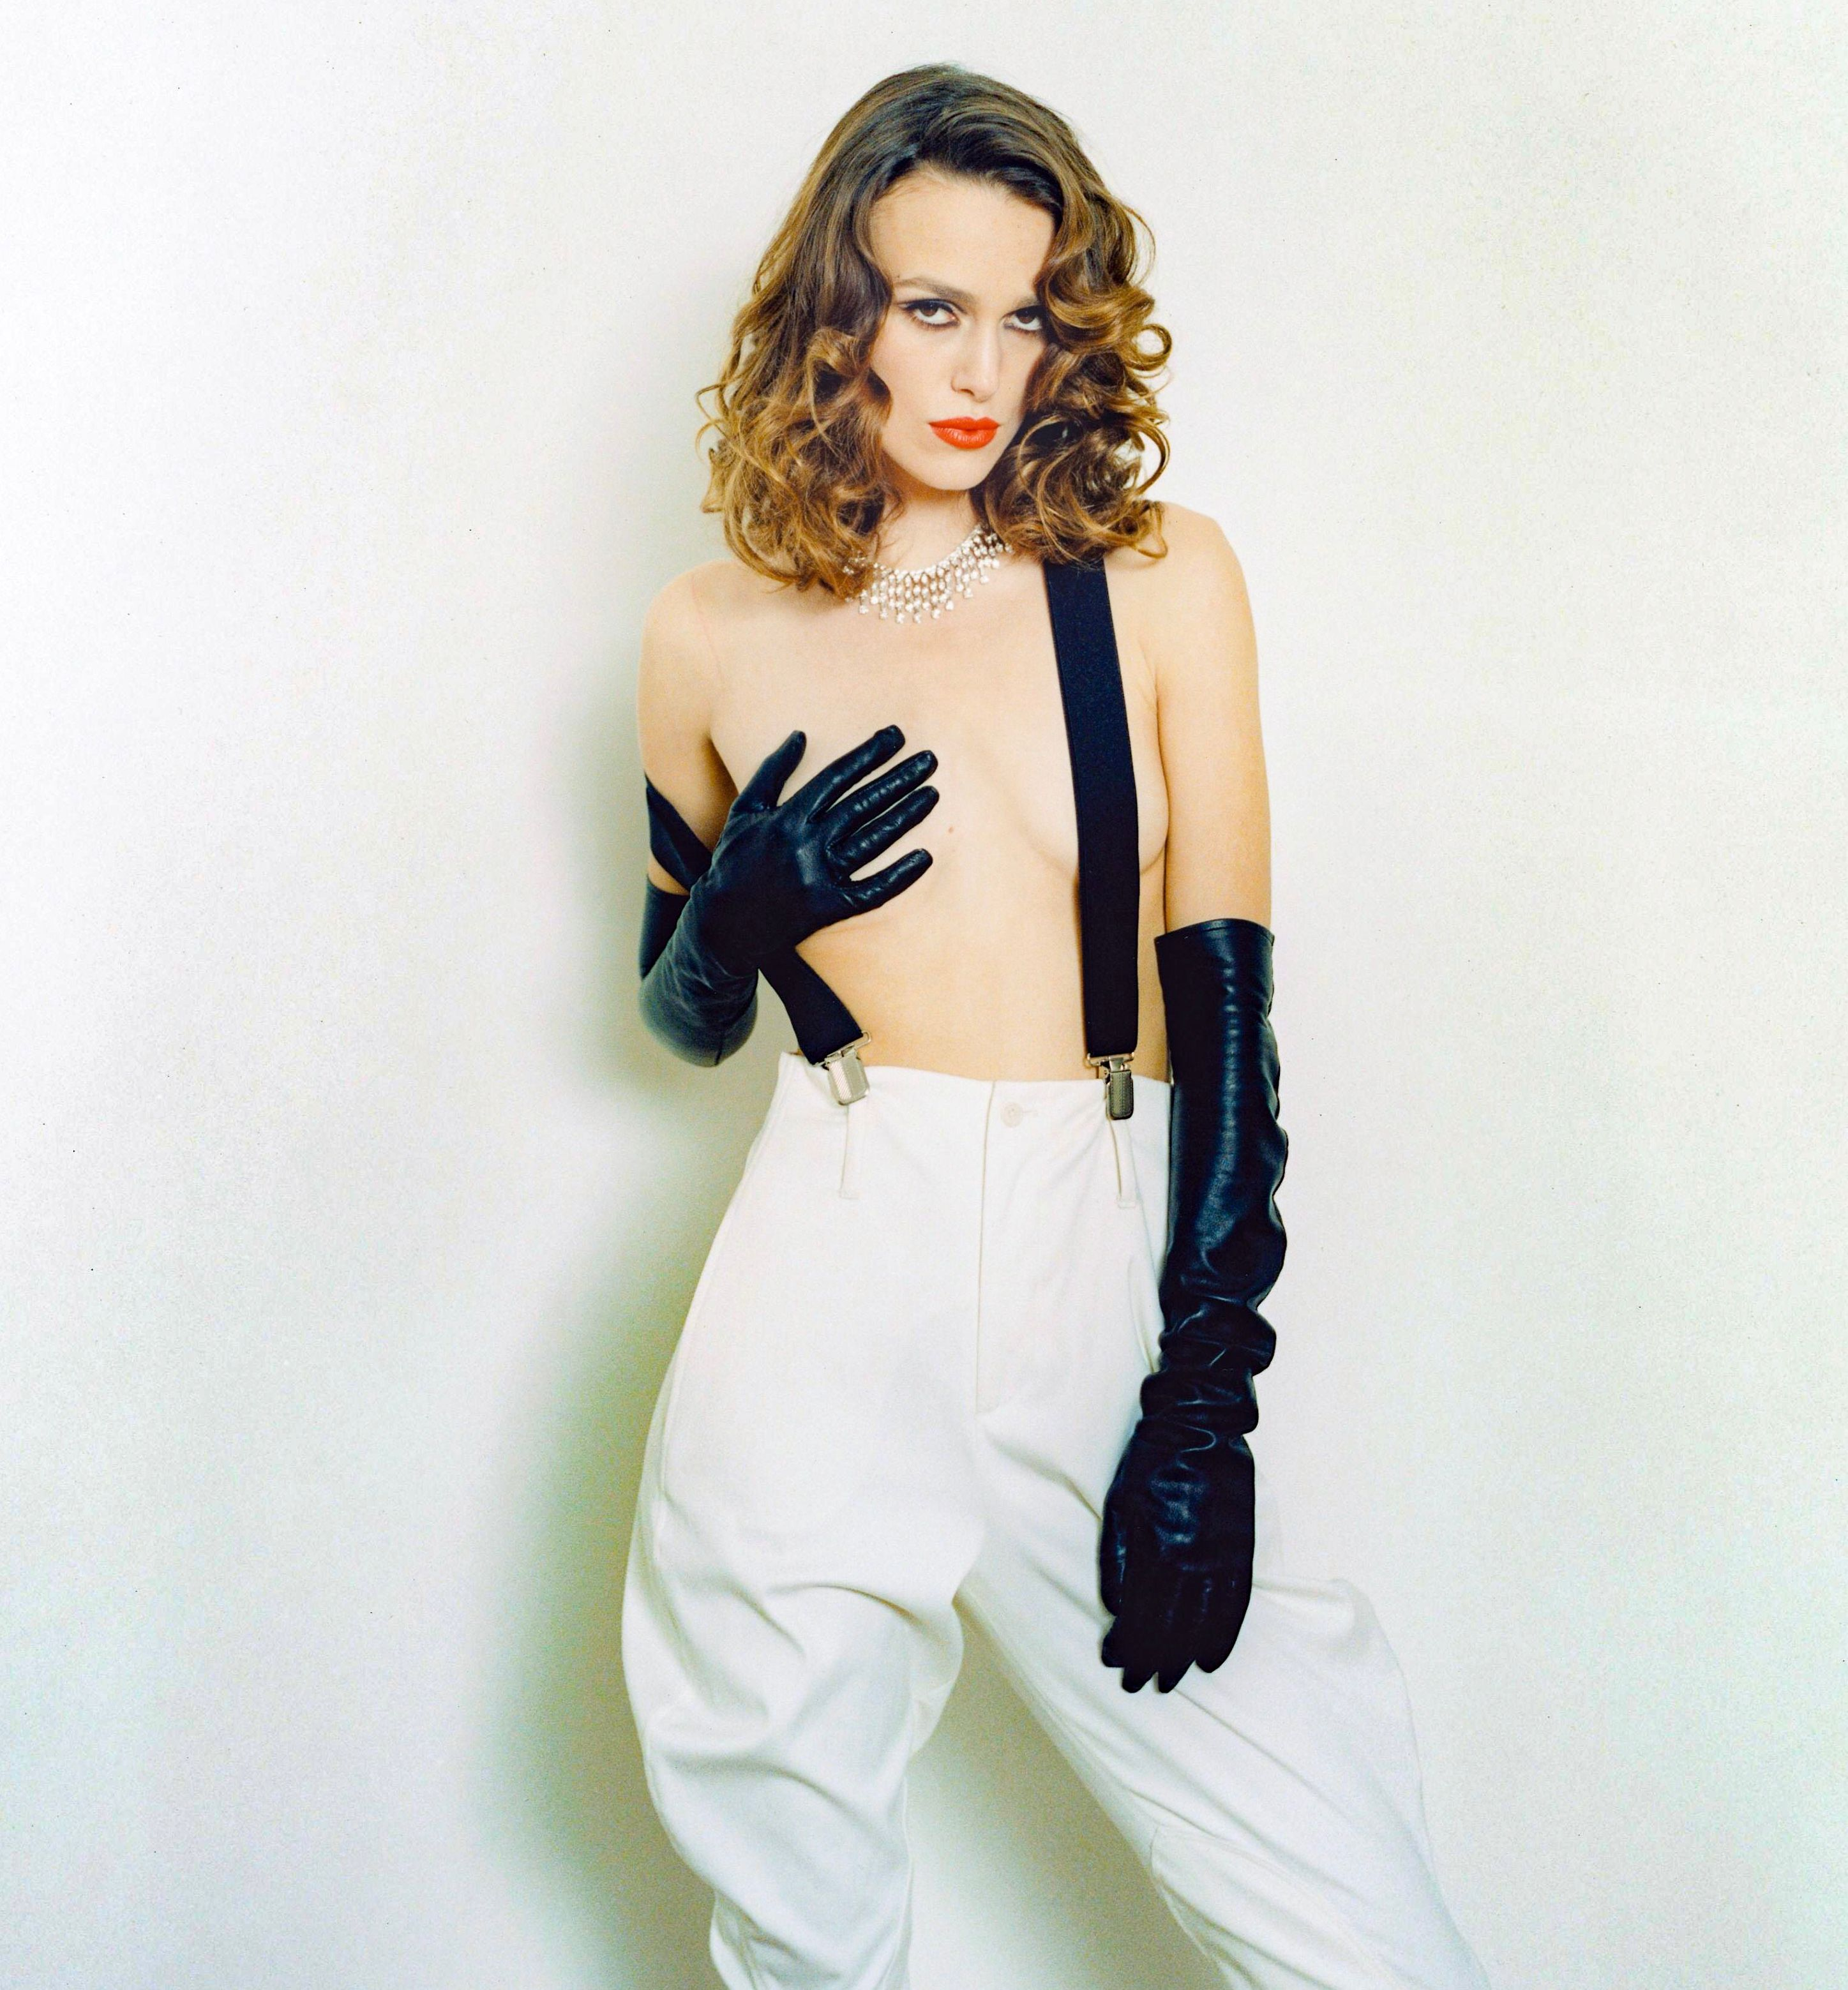 Keira knightley topless on interview magazine